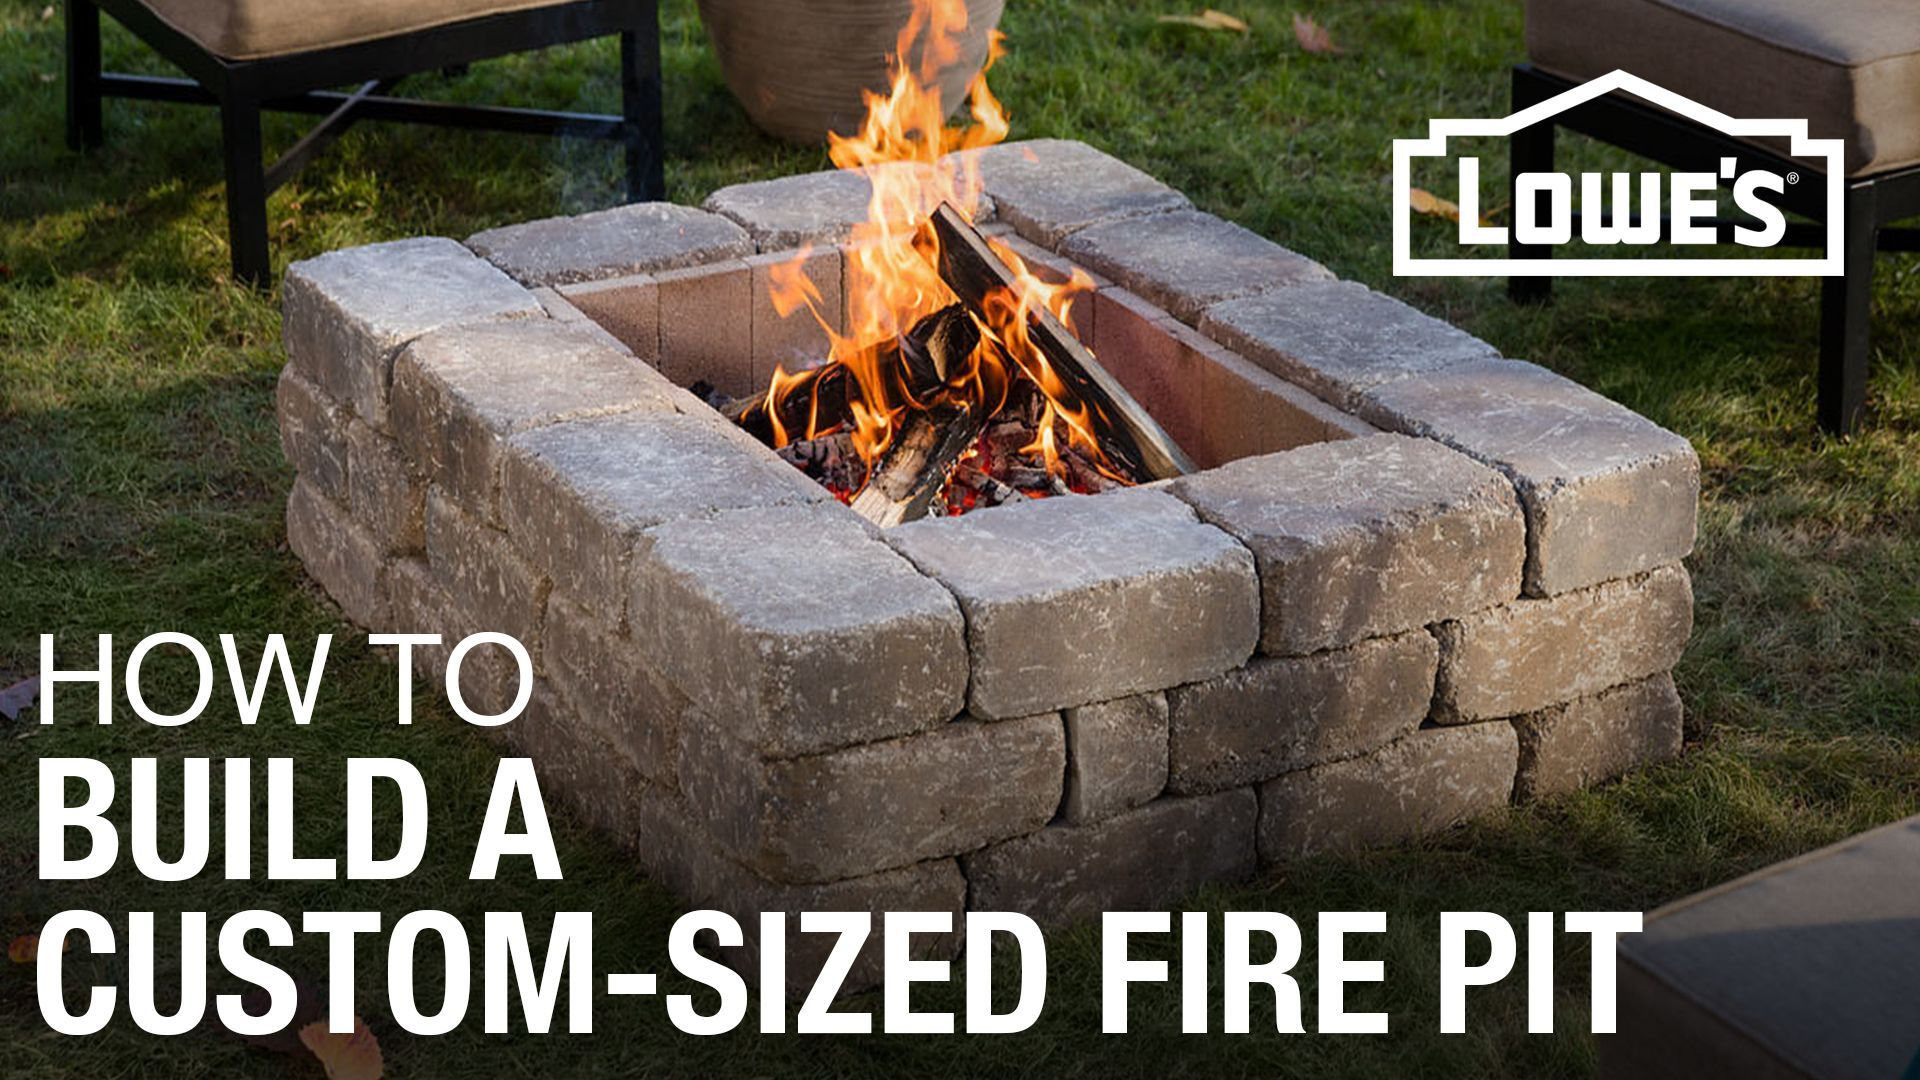 How to Build a Custom Fire Pit Square fire pit, Custom